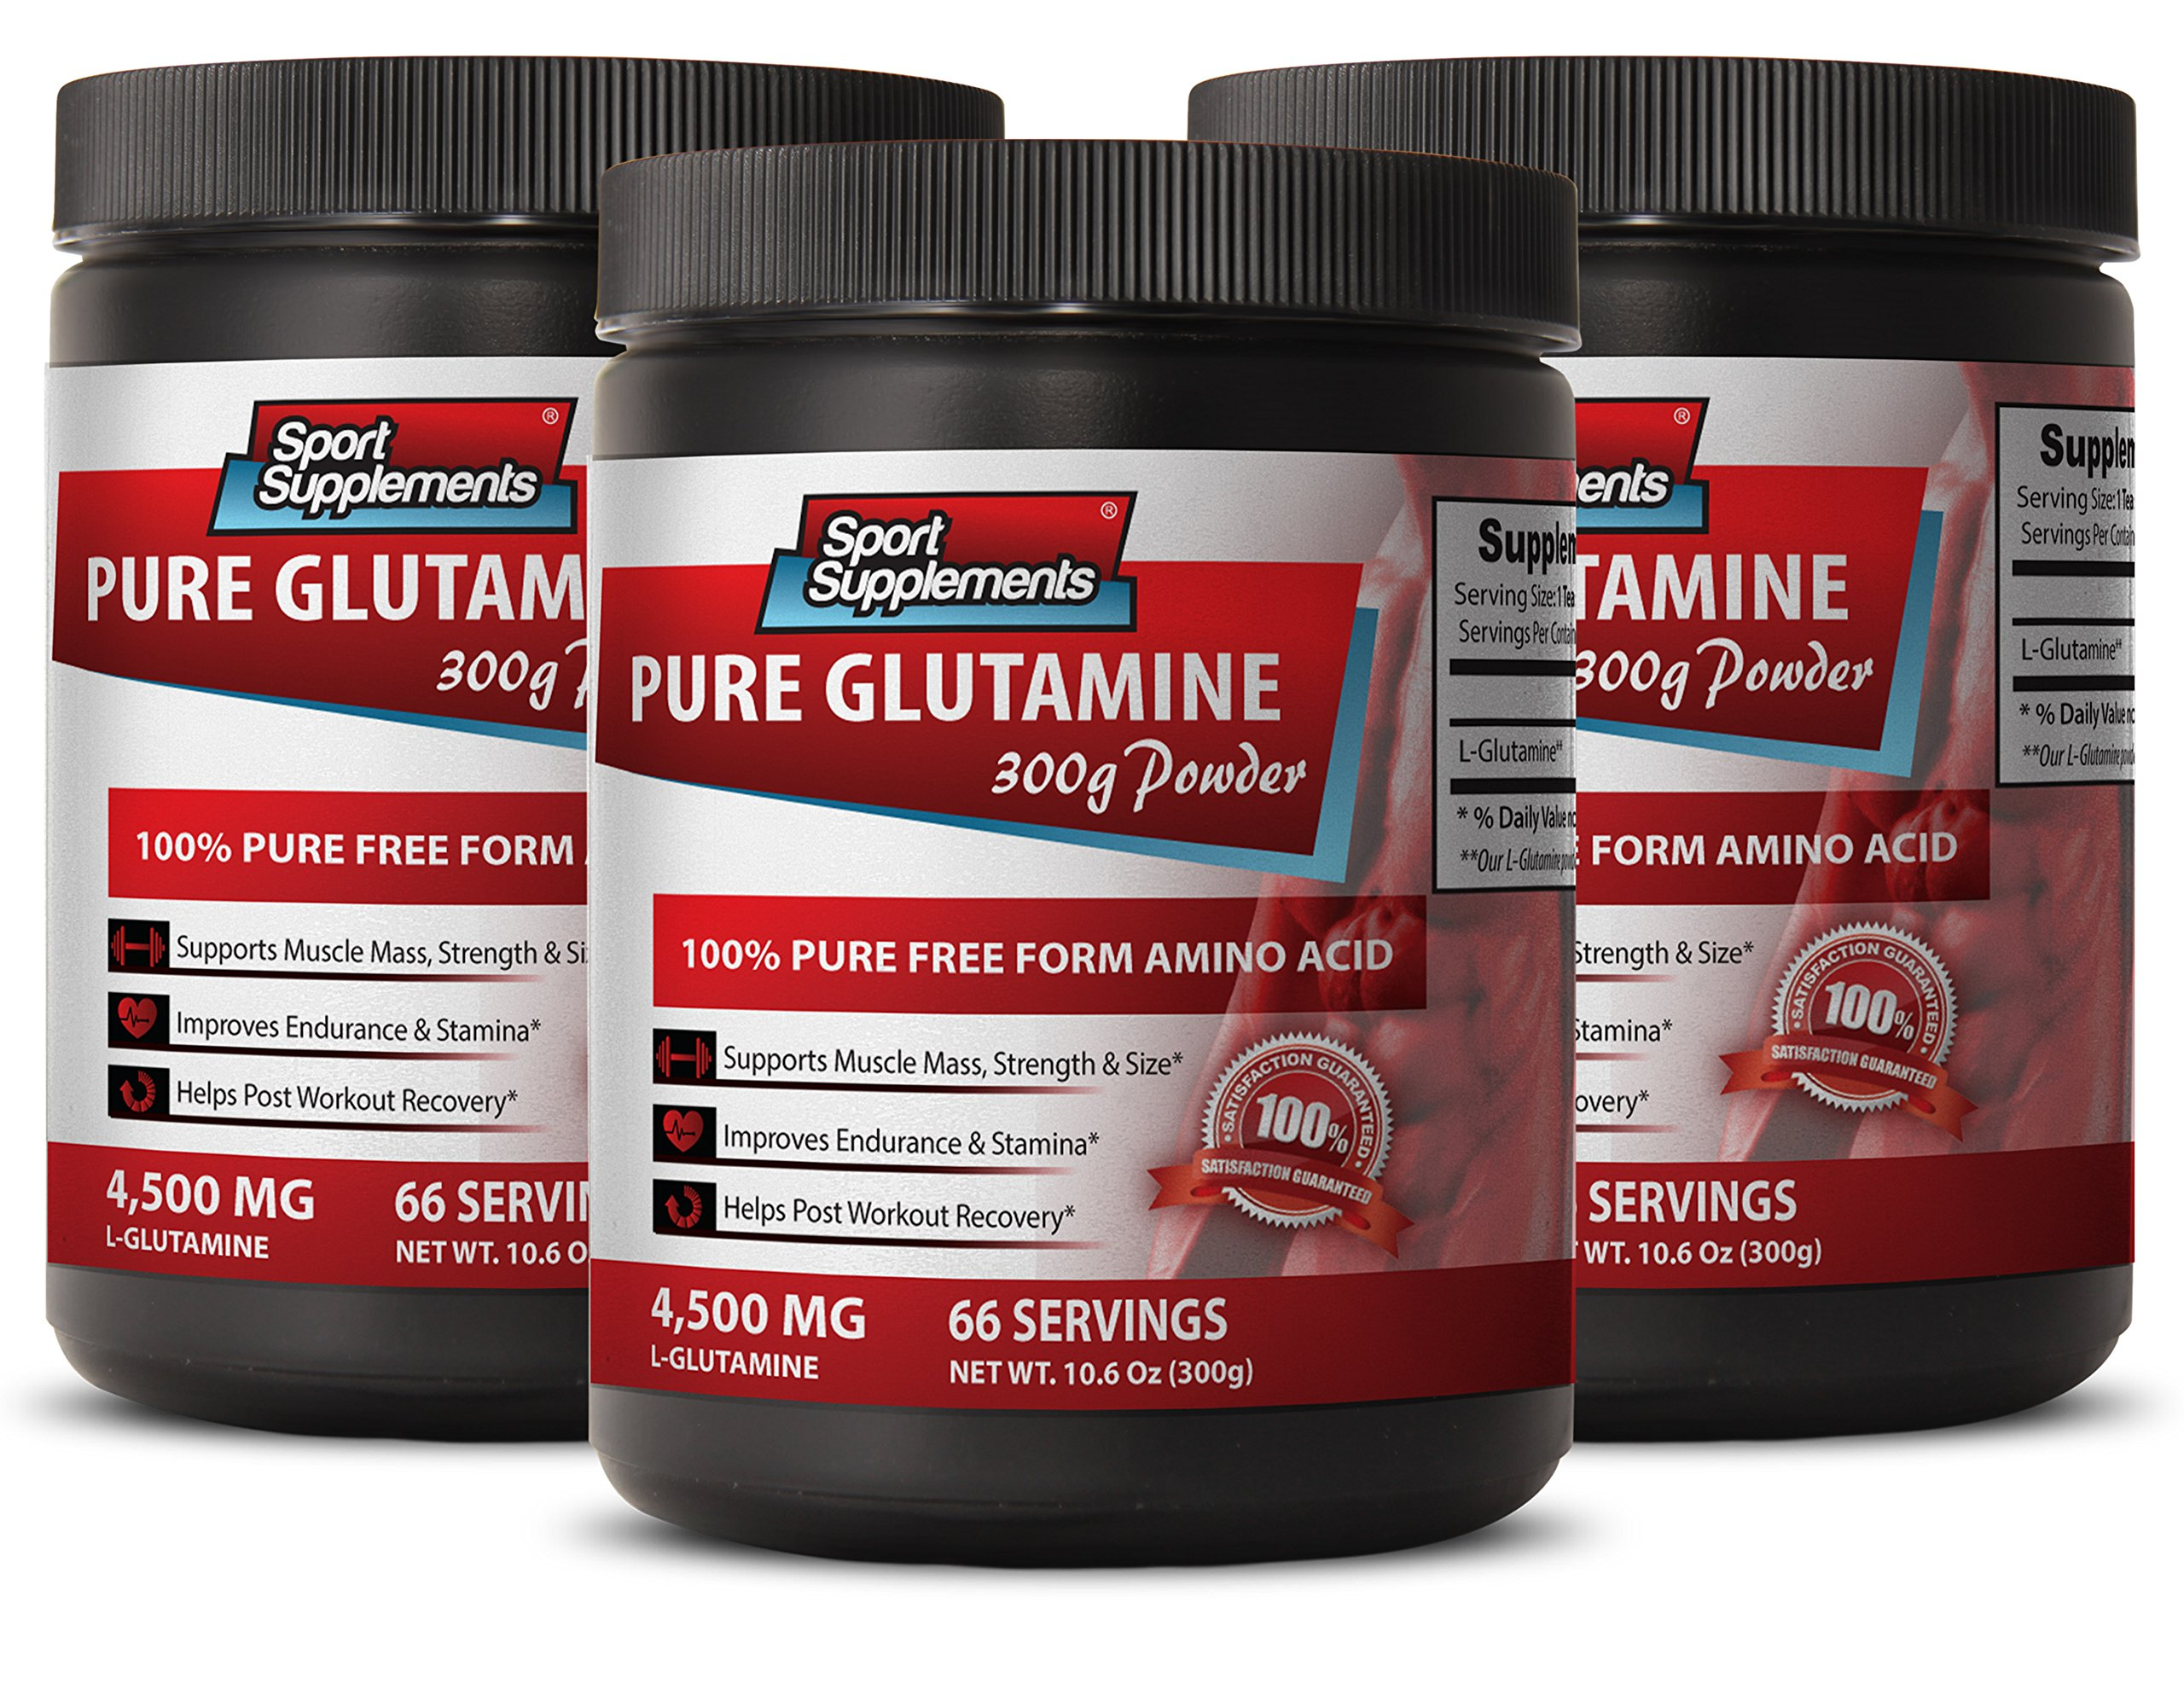 L glutamine 5000mg - L Glutamine - Restores amino acids after cells are catabolized (3 Bottles)